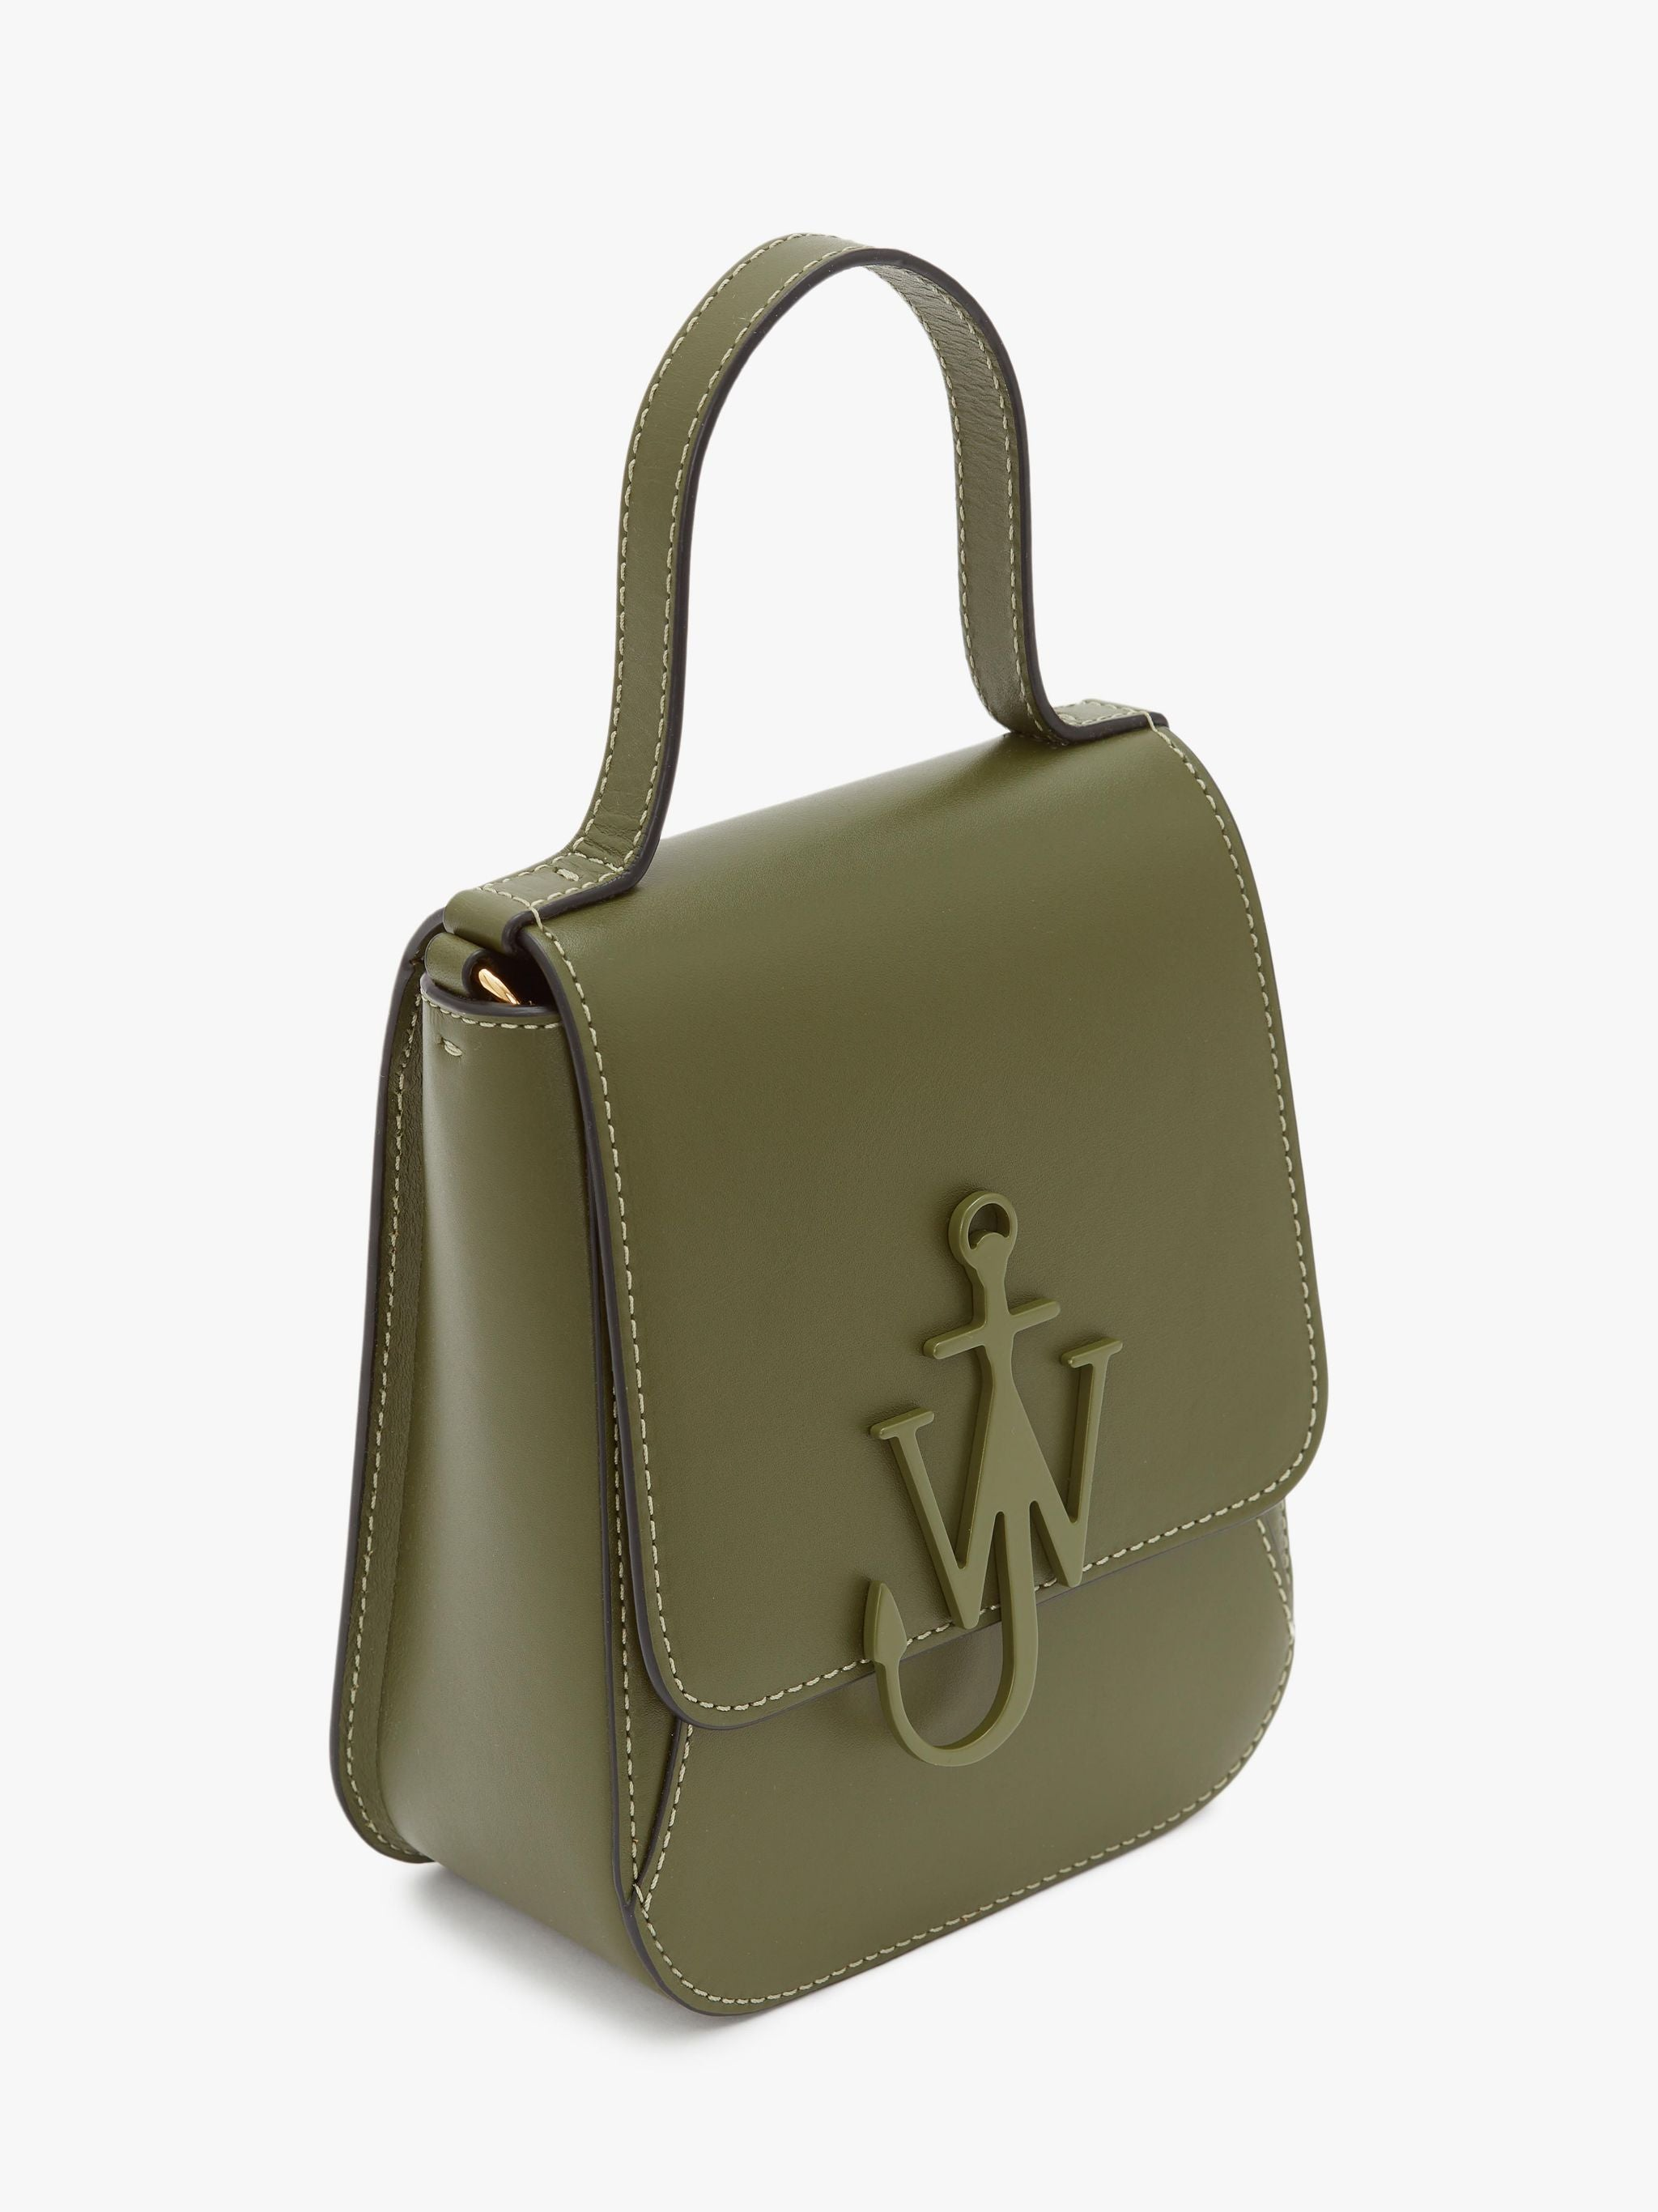 TOP HANDLE ANCHOR BAG